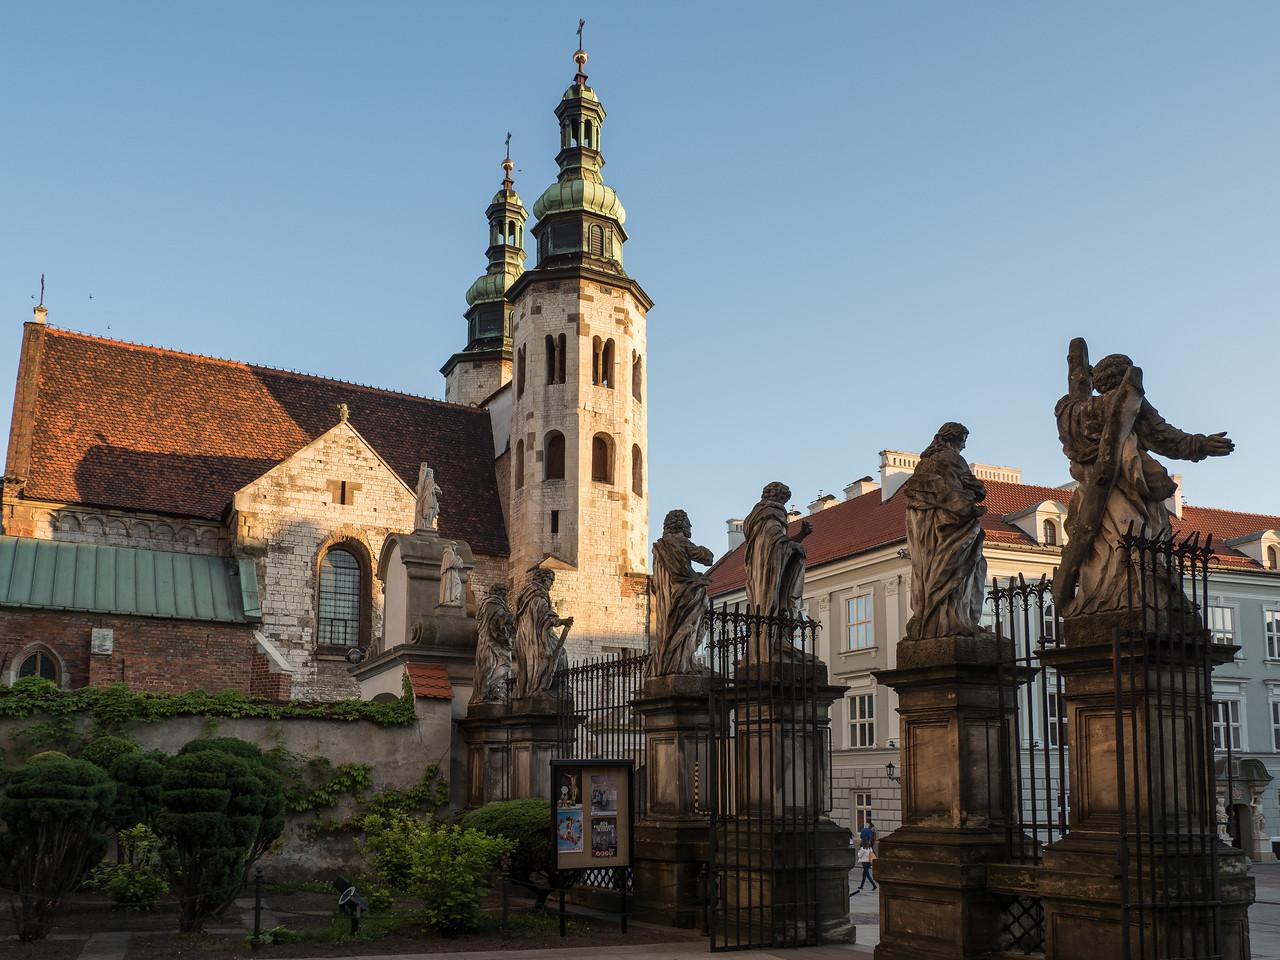 St Andrew's Church (1079), Krakow